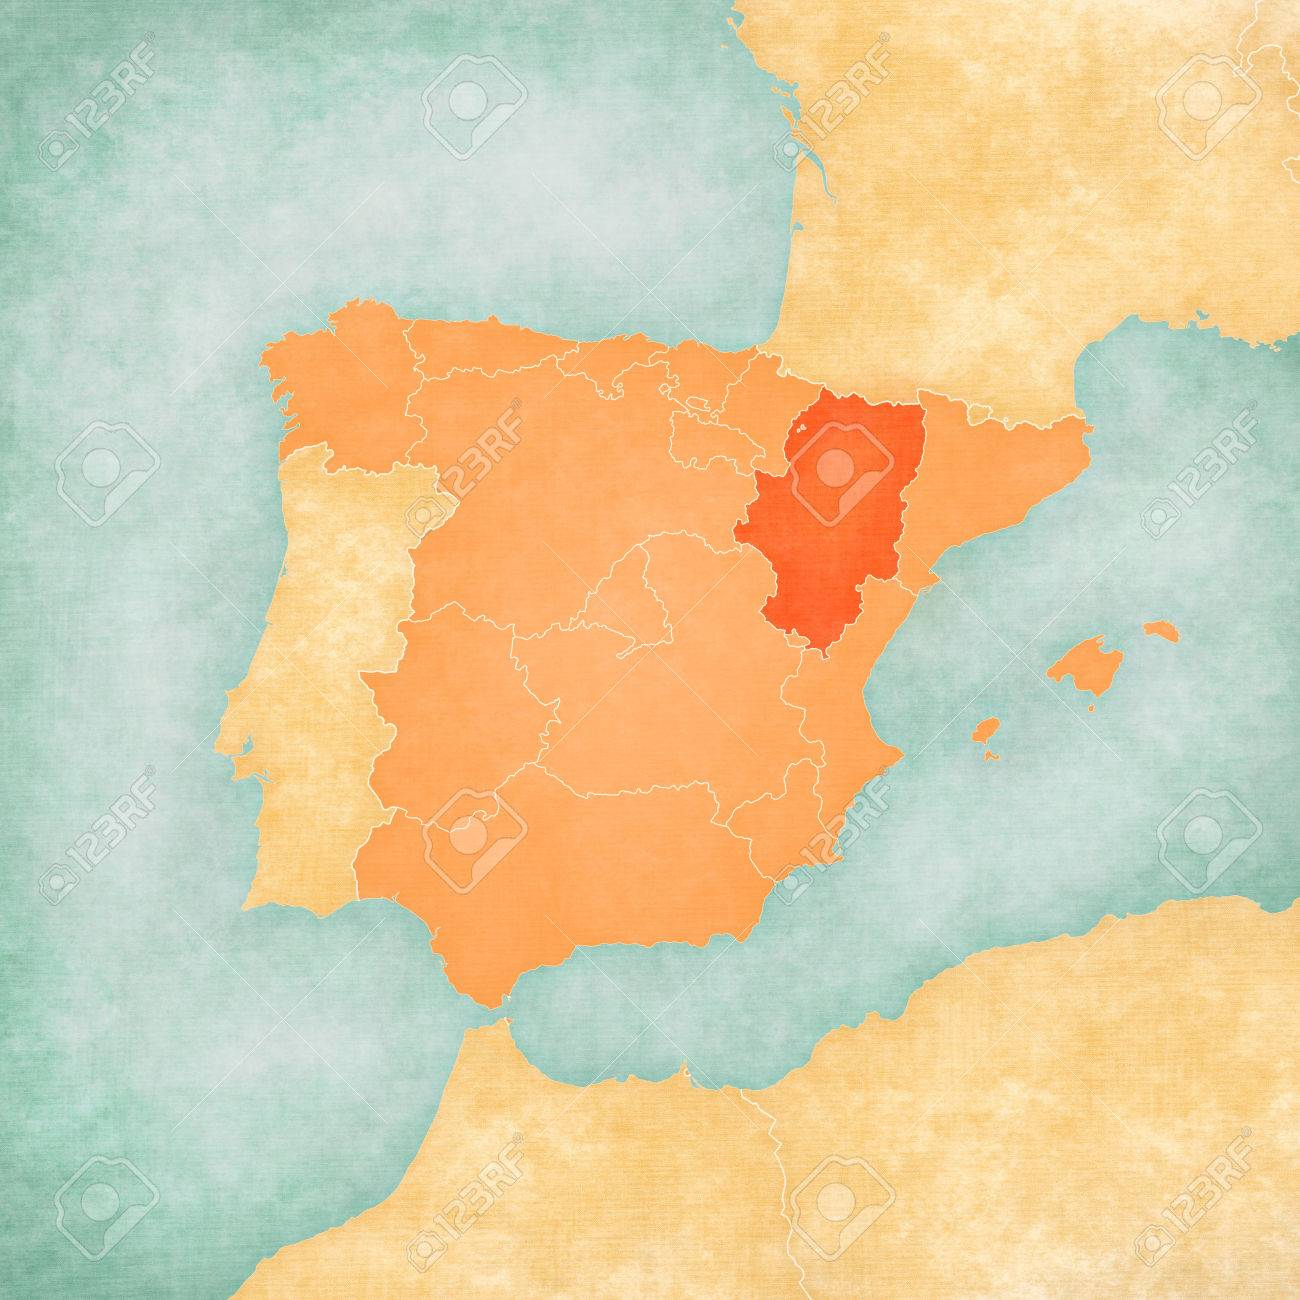 Aragon Spain On The Map Of Iberian Peninsula In Soft Grunge